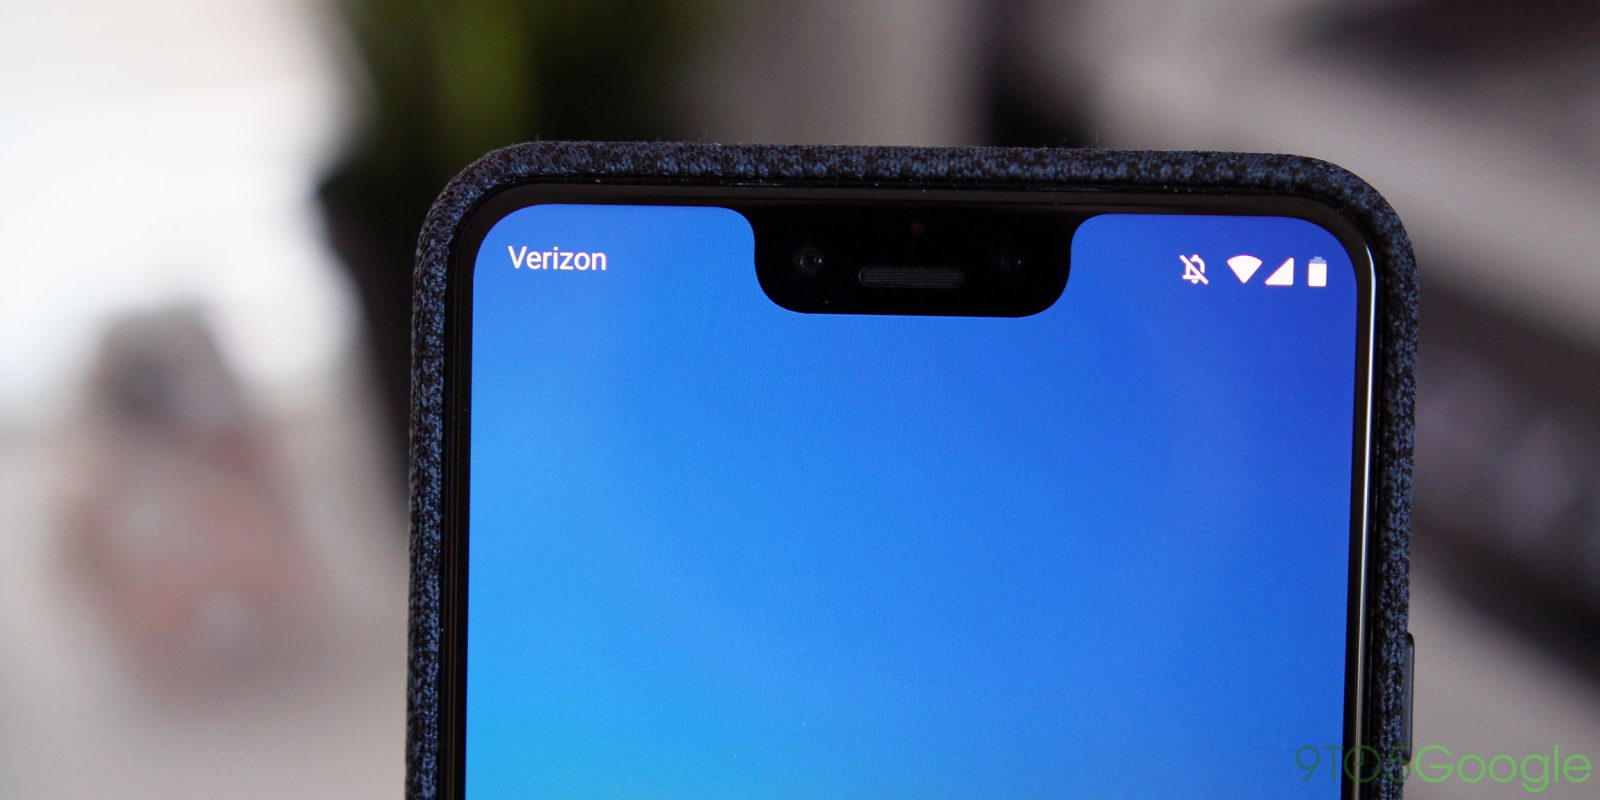 Verizon Google Pixel 3 is SIM-locked, will need to be unlocked to